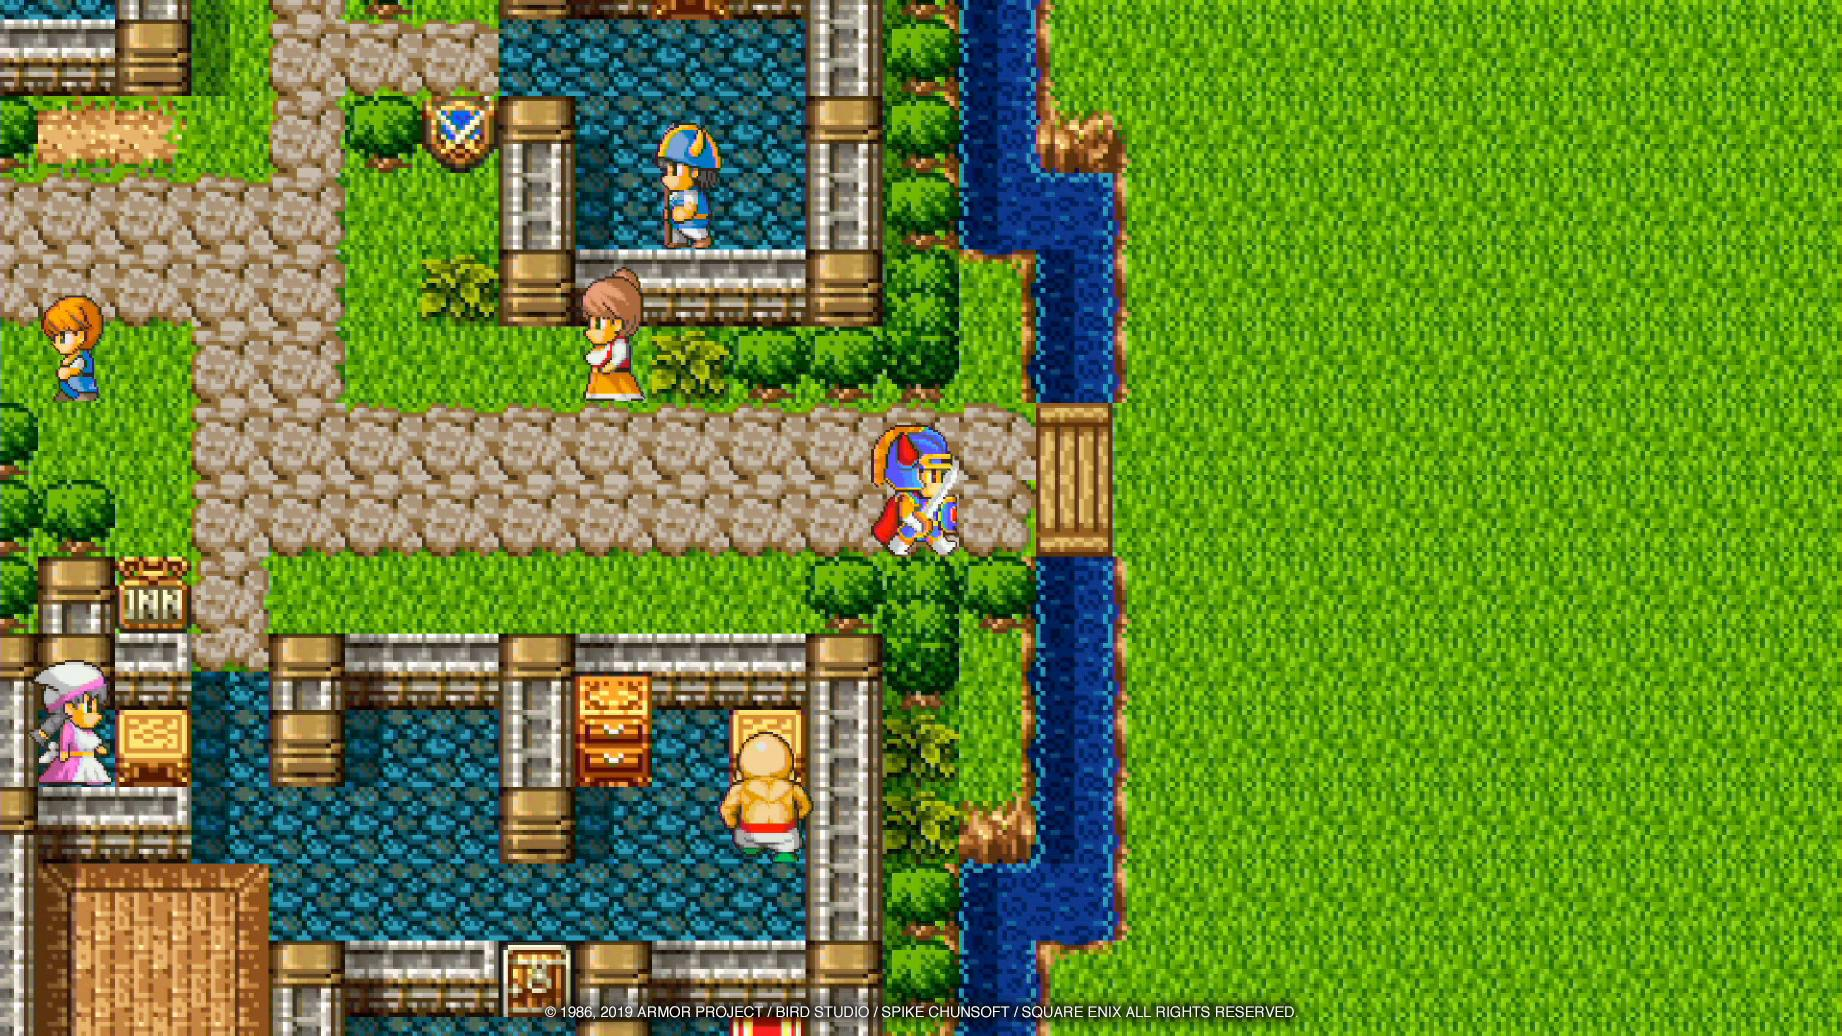 Classic Dragon Quest Games Come To Nintendo Switch Engadget